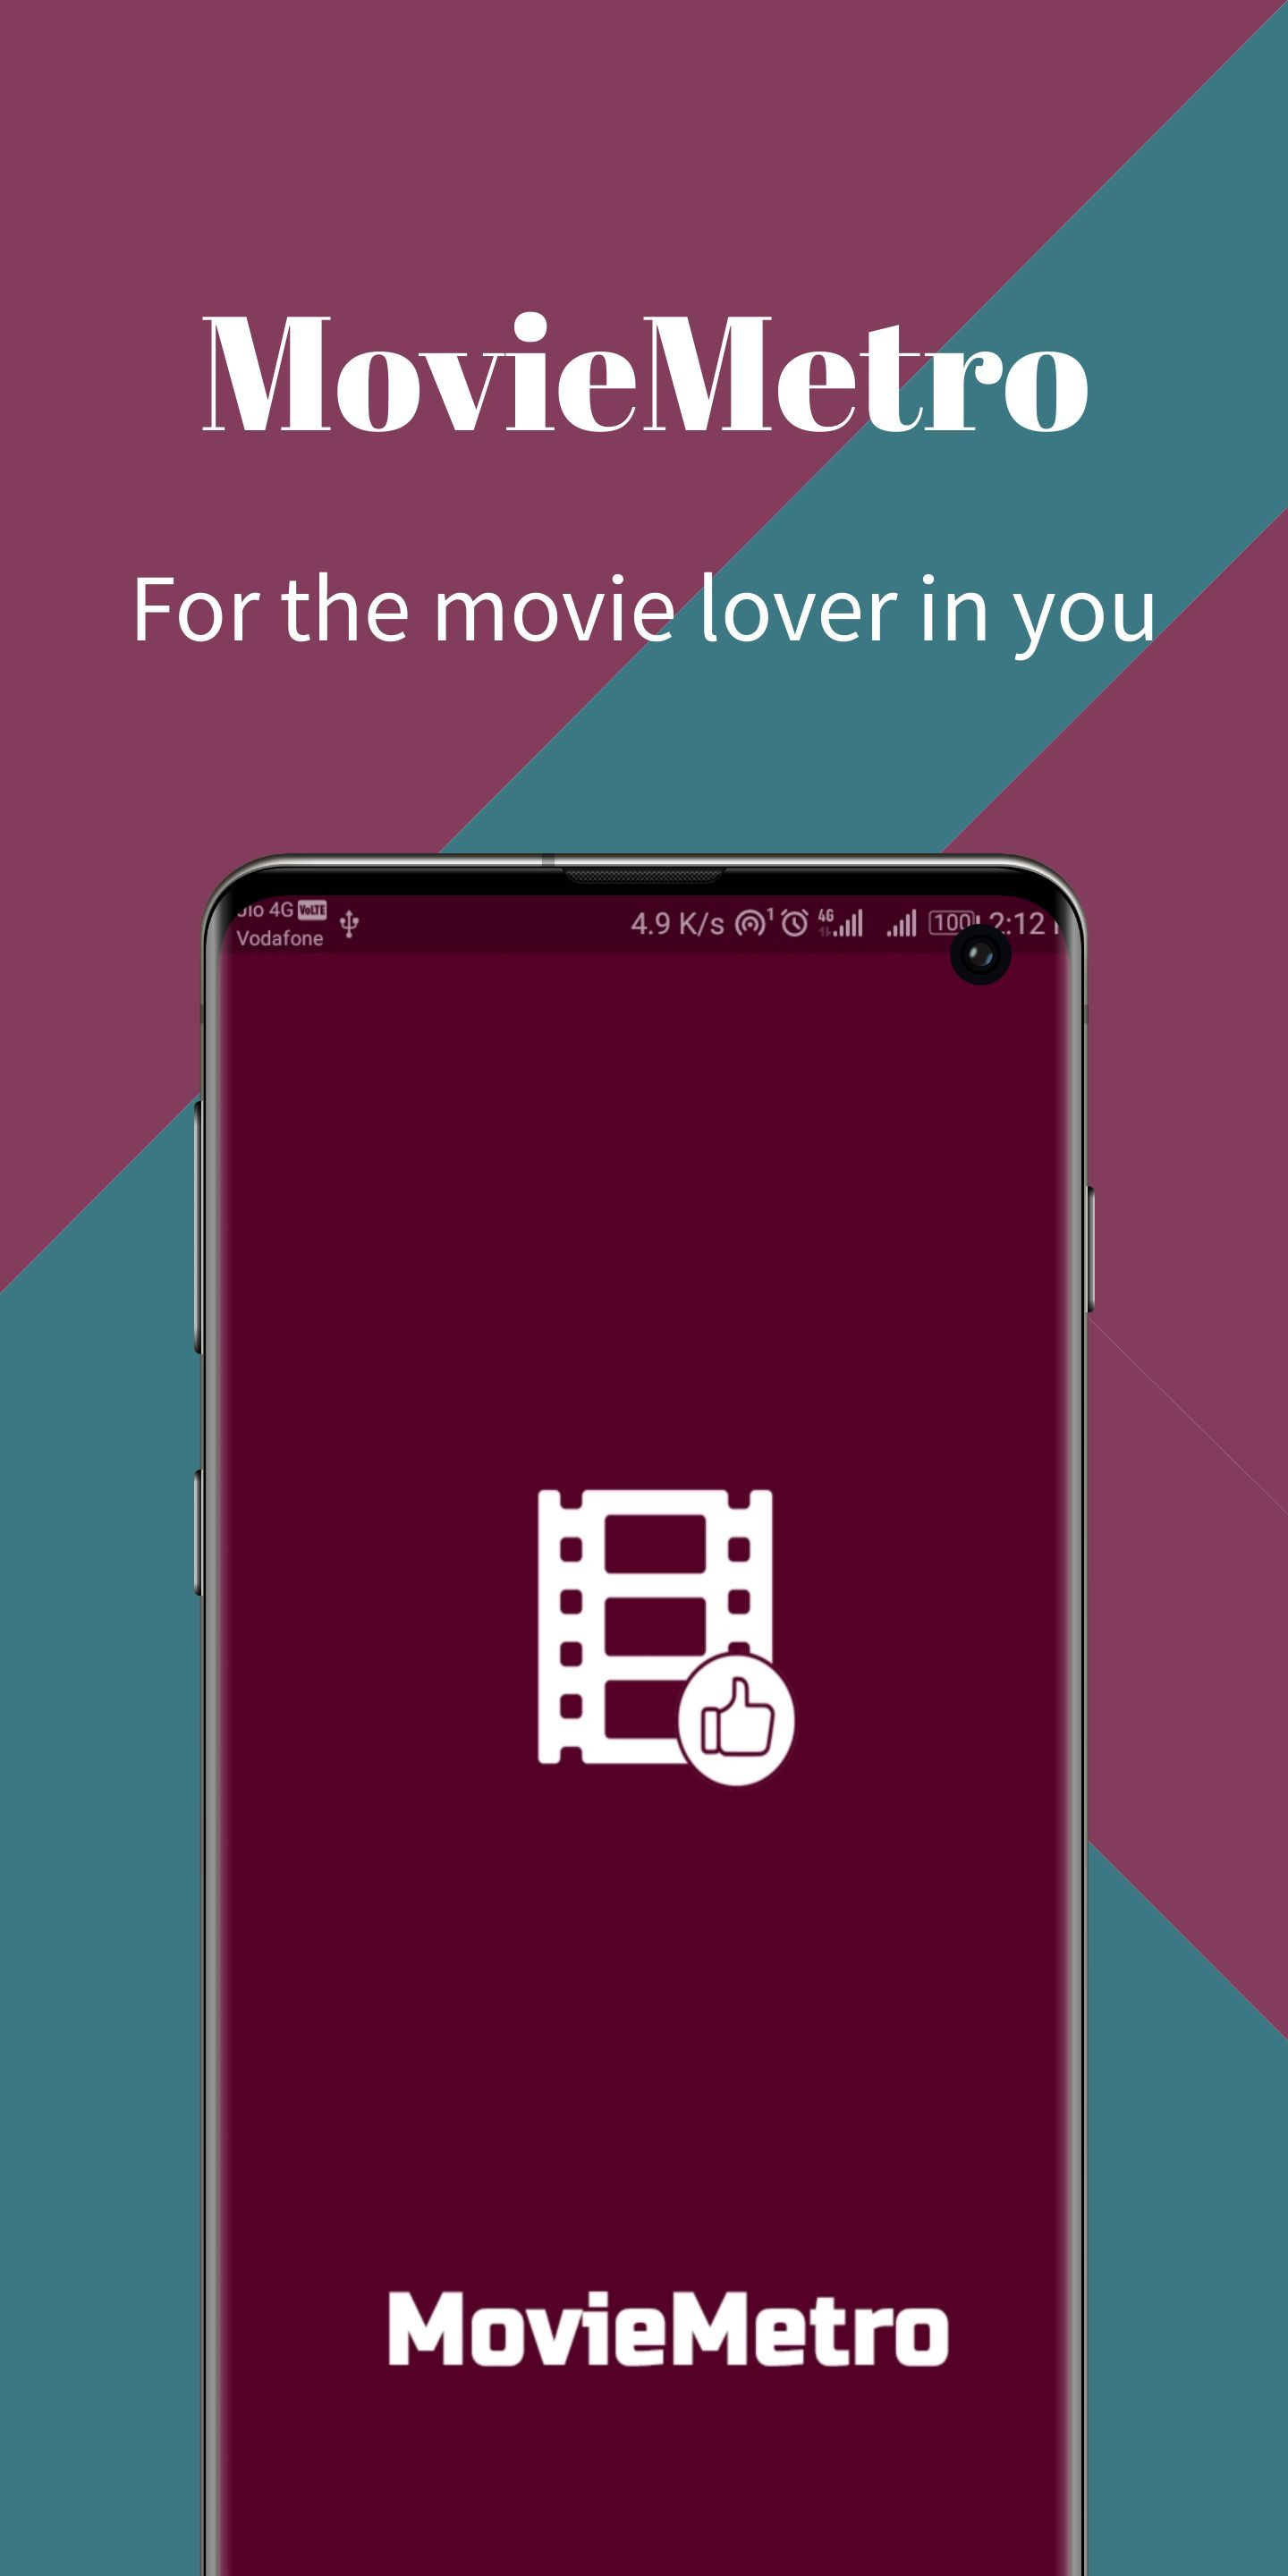 Samsung S10 Screenshot 27 template. Quickly edit text, colors, images, and more for free.